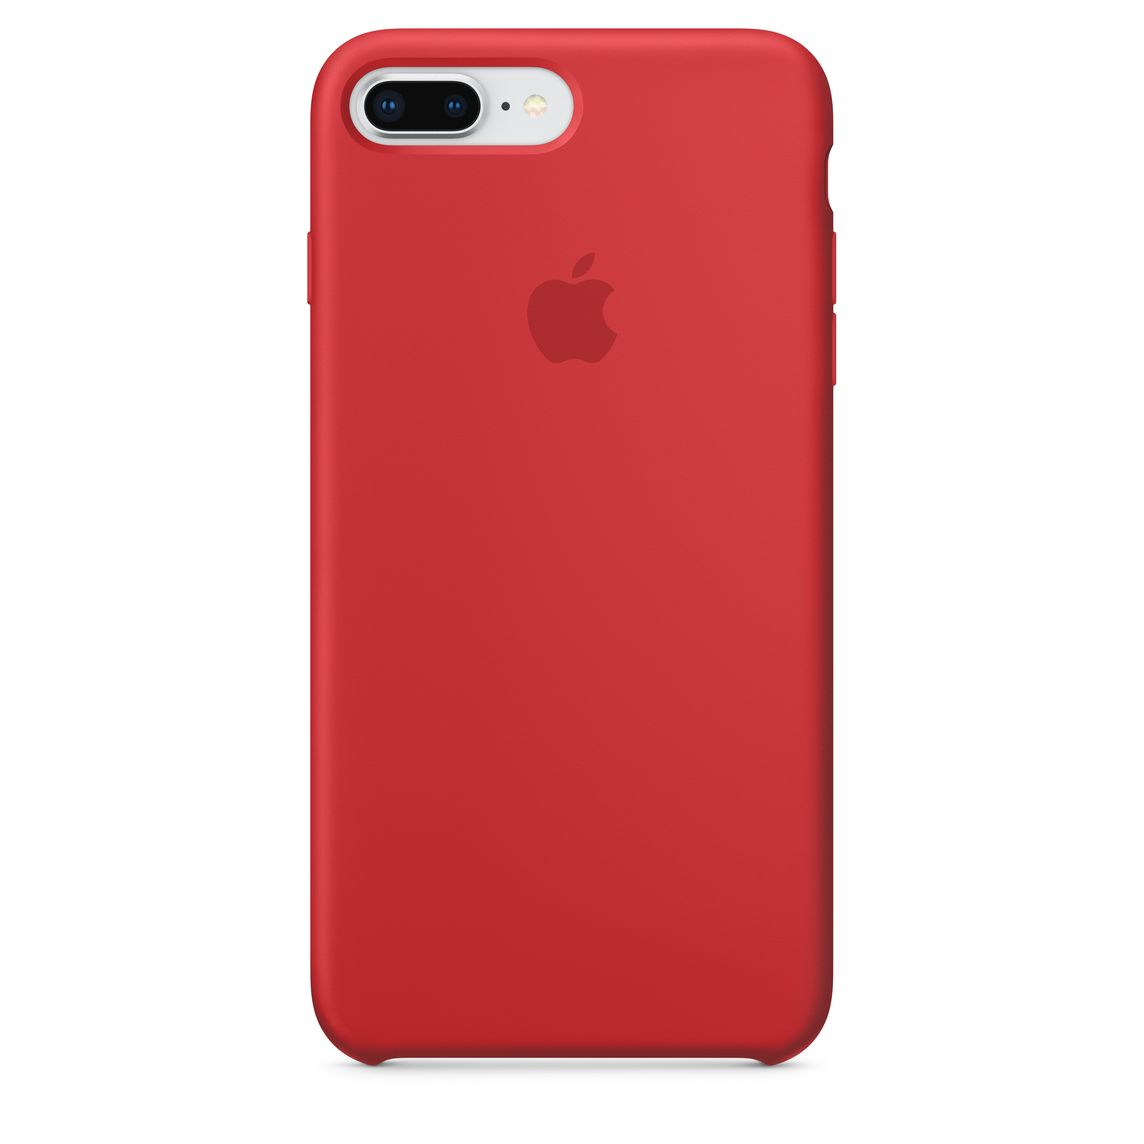 sports shoes c2945 3b241 iPhone 8 Plus / 7 Plus Silicone Case - (PRODUCT)RED